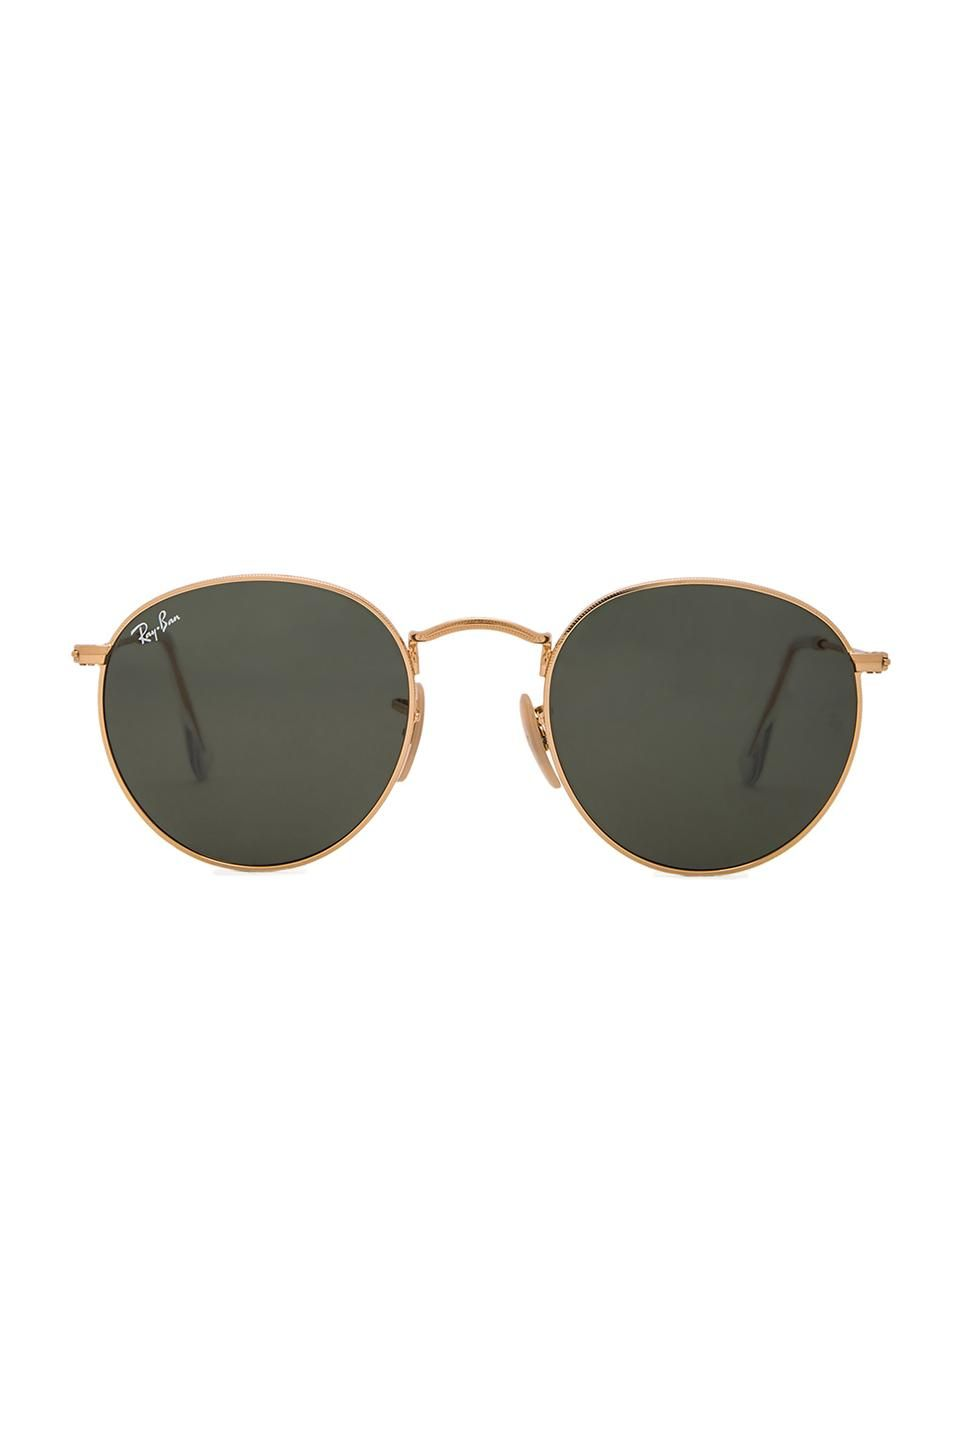 0b2afbff1bd30 Ray-Ban Round Metal in Green Classic